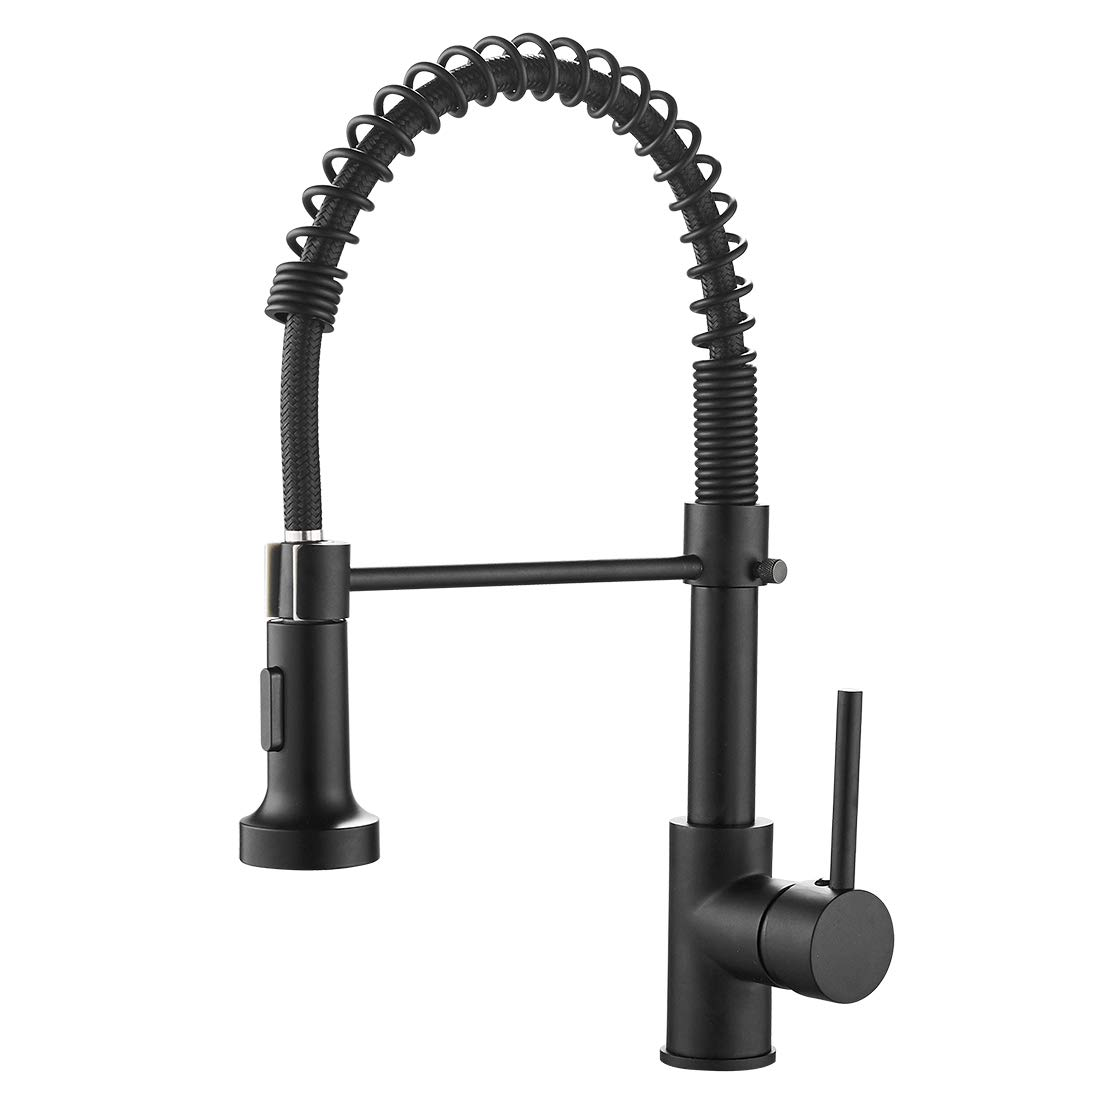 OWOFAN Lead-Free Commercial Solid Brass Single Handle Single Lever Pull Down Sprayer Spring Kitchen Sink Faucet, Paint Black Kitchen Faucets 9009R-A